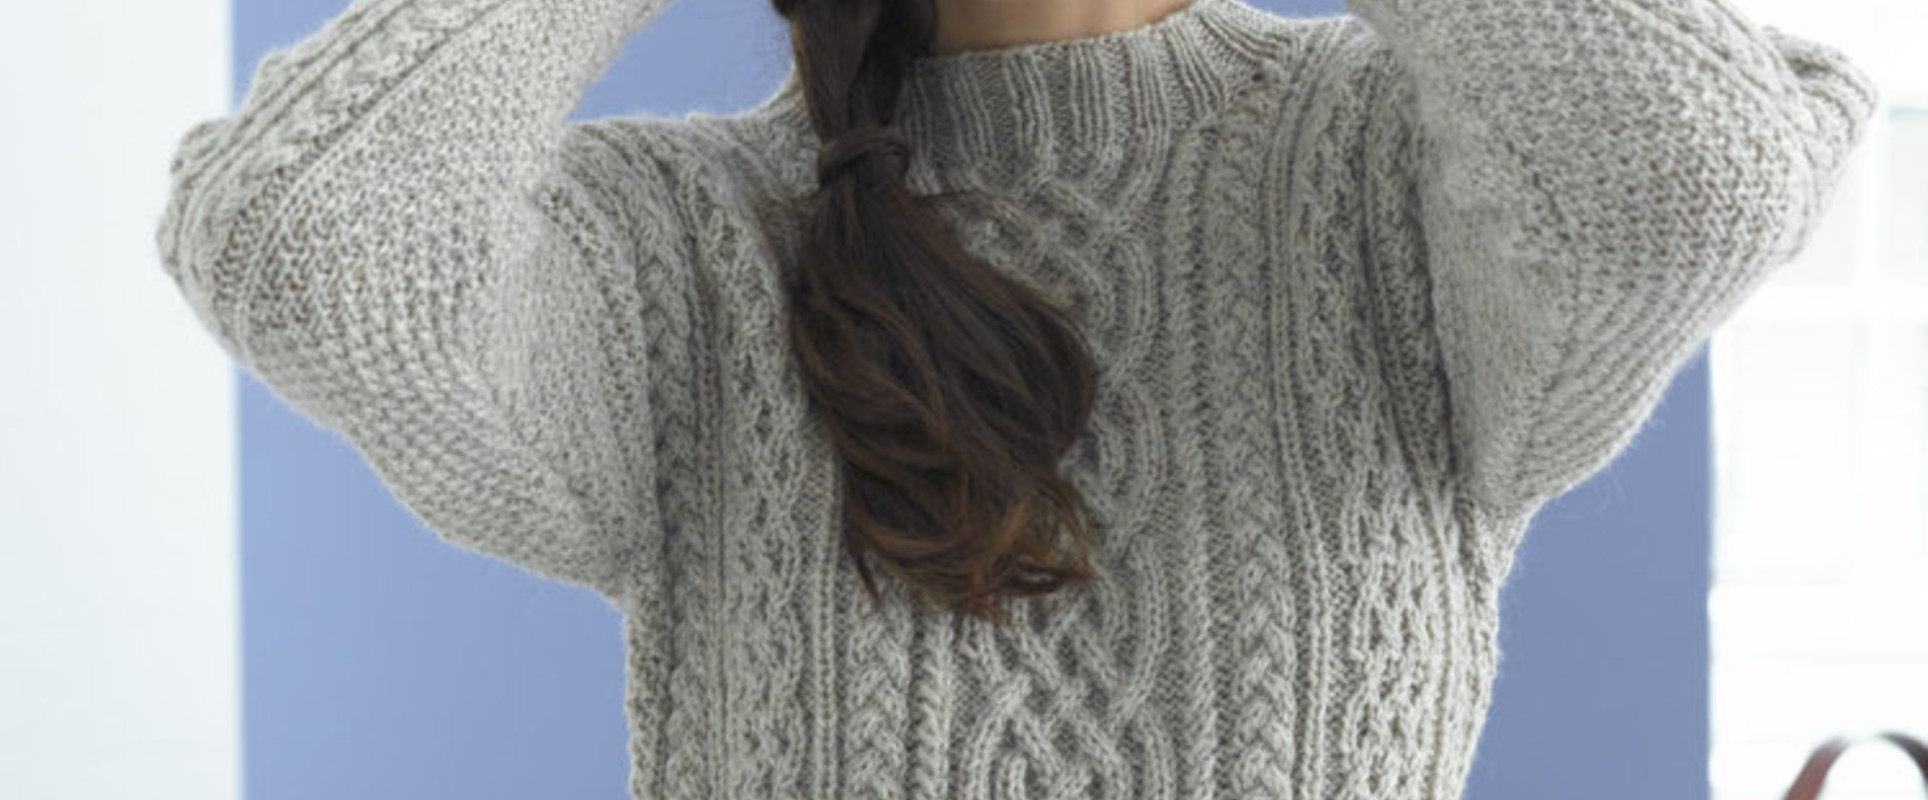 Simple Knit Sweater Pattern Free Top 5 Free Aran Jumper Knitting Patterns For Women Lovecrafts